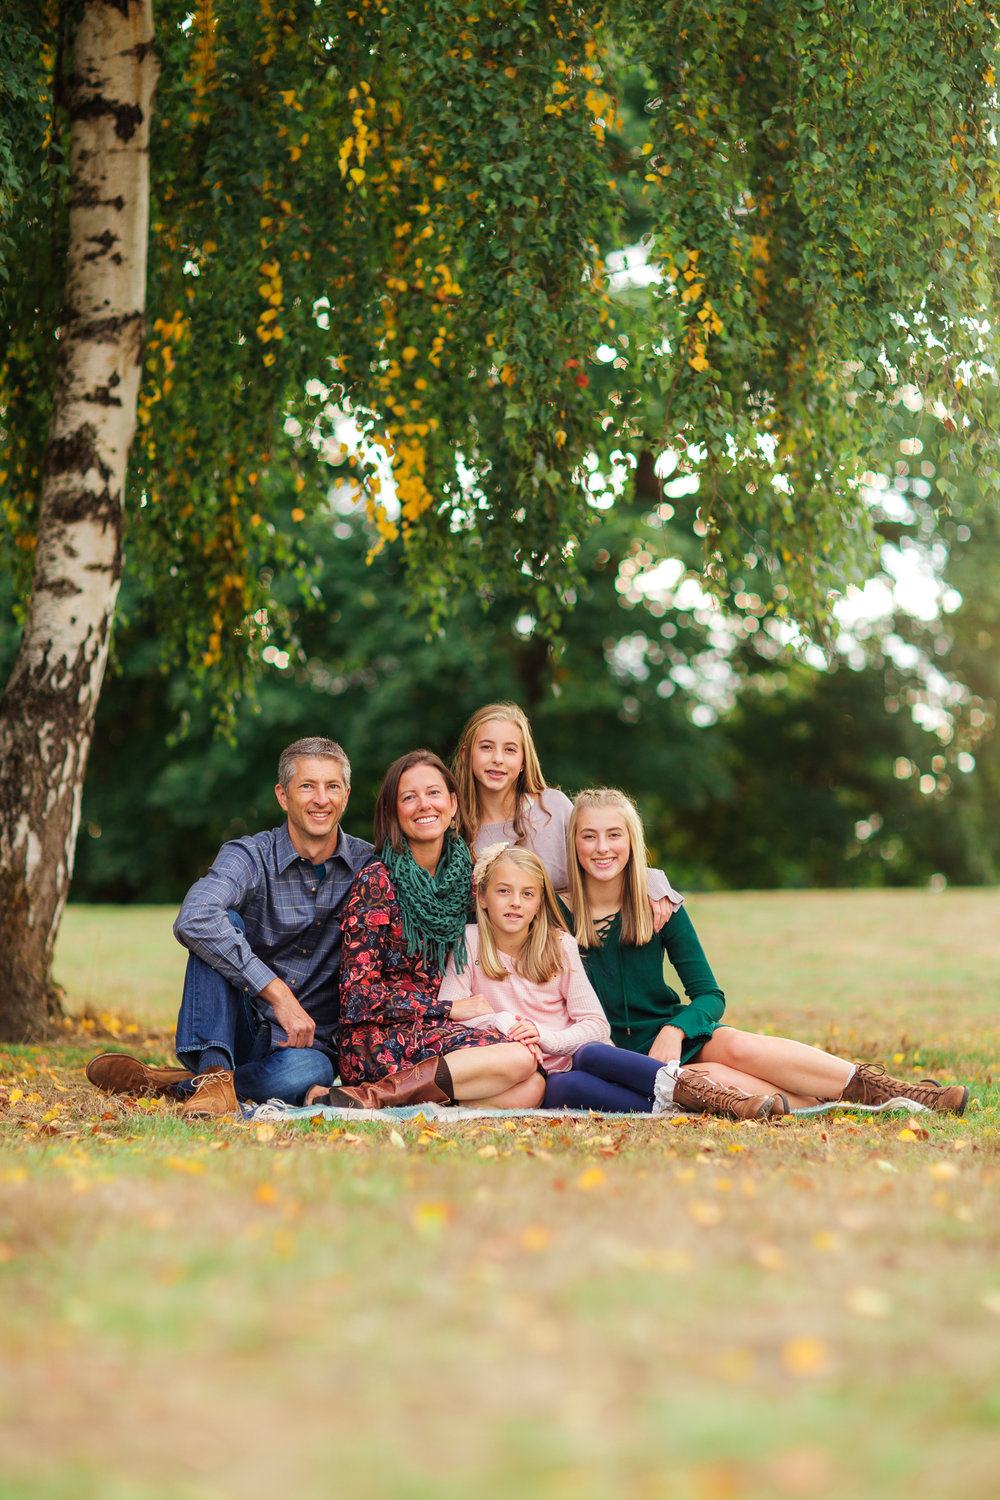 ariellanoellephotography-fall-mini-sessions-family-portraits-monroe-washington-duvall-carnation-redmond-woodinville-area-portraits-2.jpg